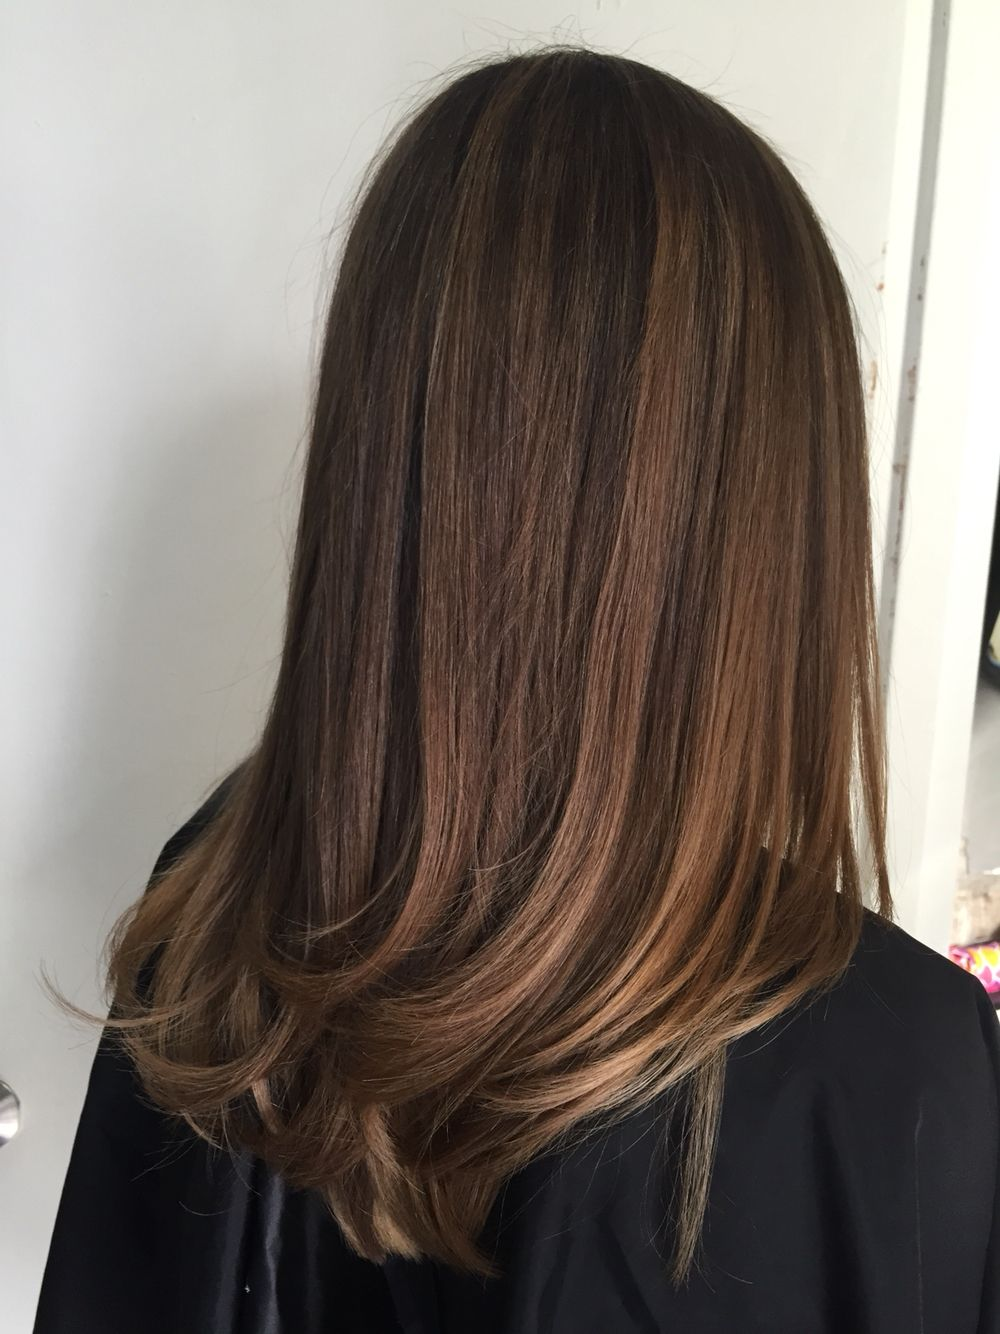 Natural Looking Balayage Highlights Hair Balayage Hair